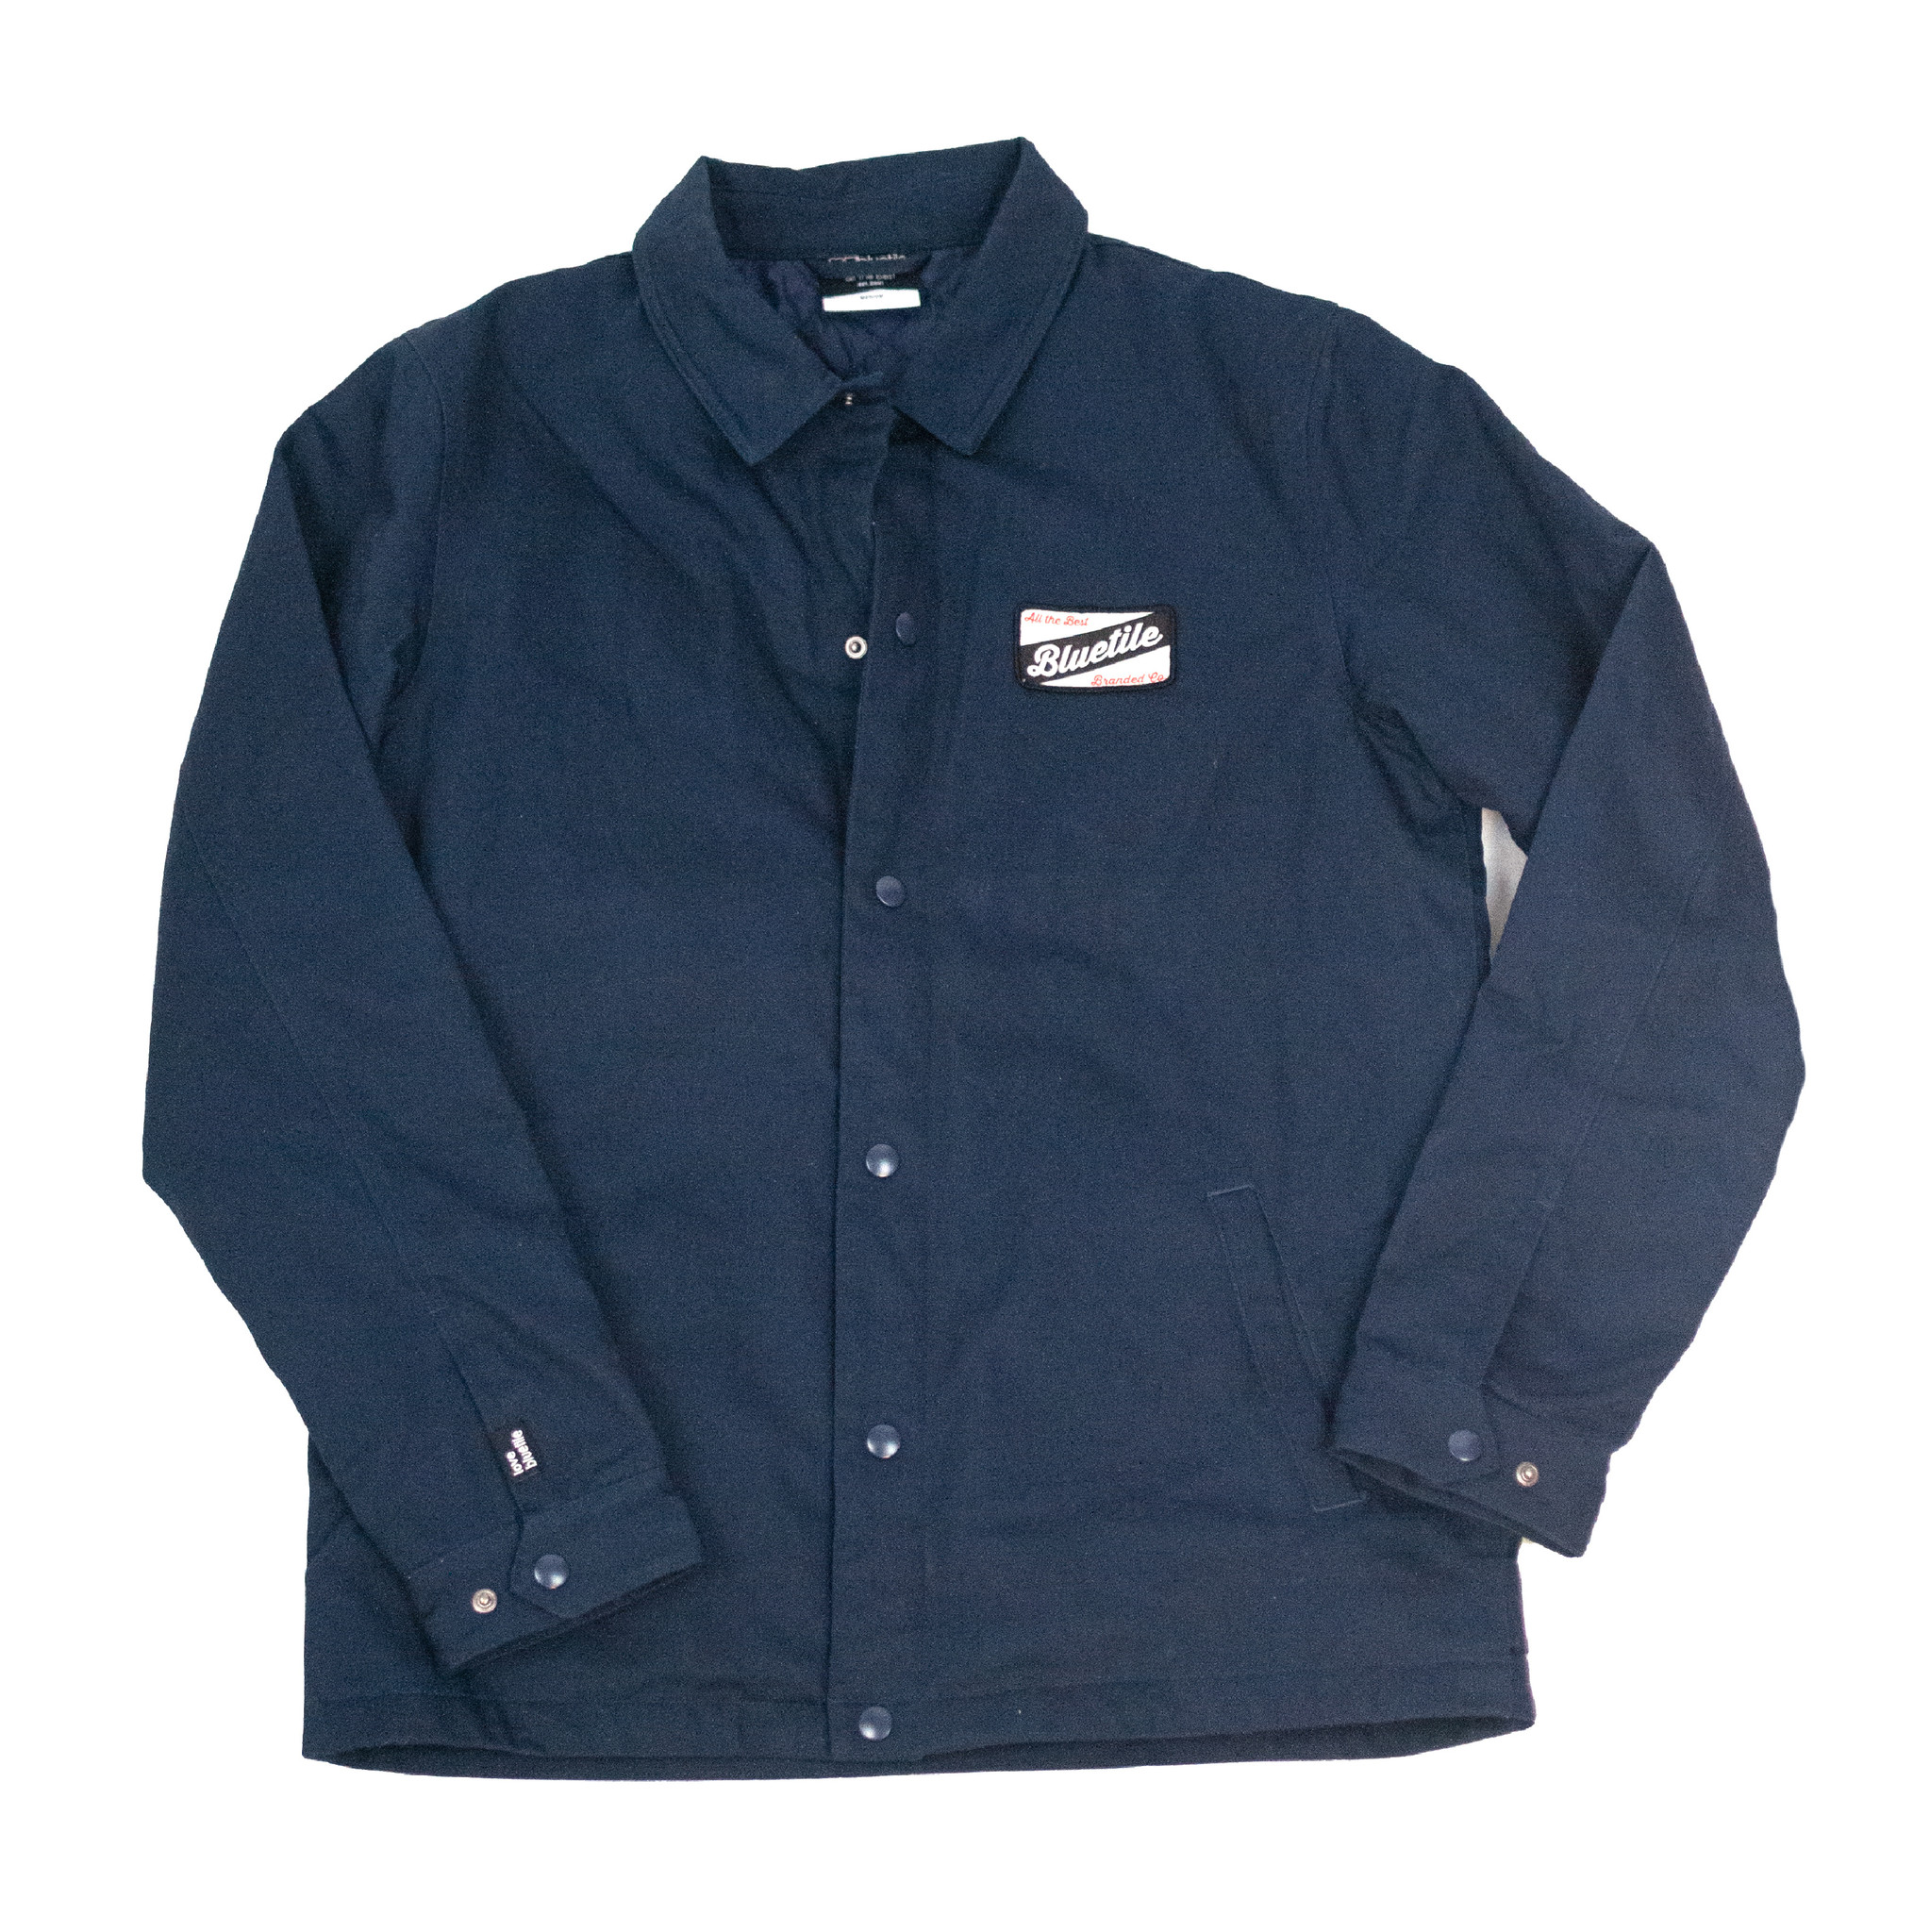 BLUETILE BLUETILE CRAFT MECHANIC JACKET